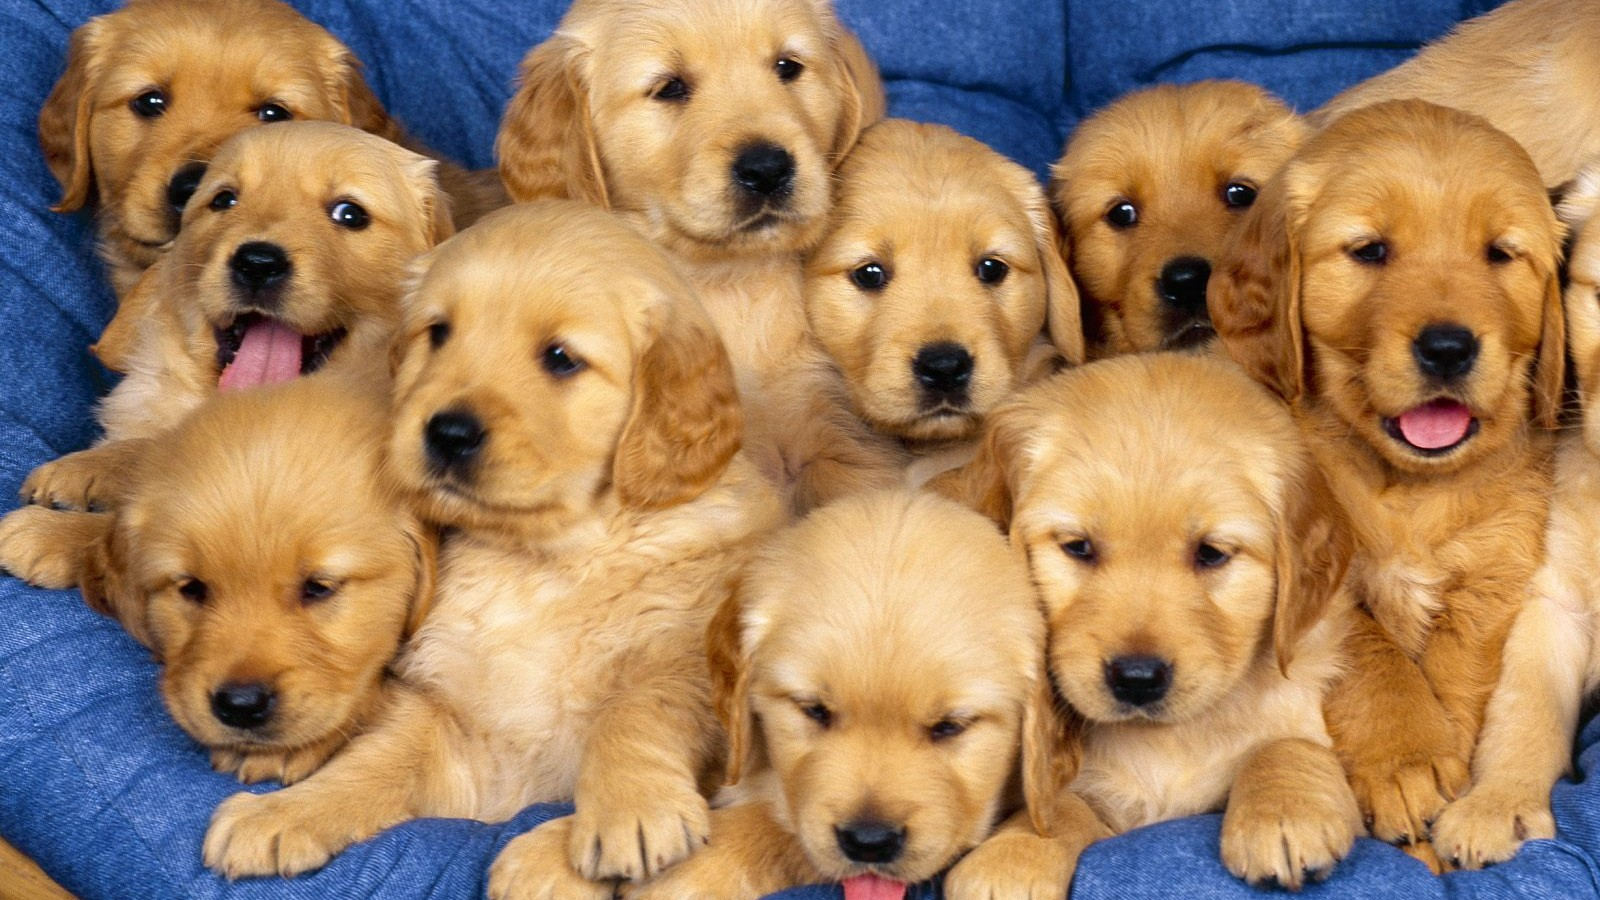 Cute Wallpapers Of Dogs And Puppies Cute Labrador Puppies Hd Wallpaper